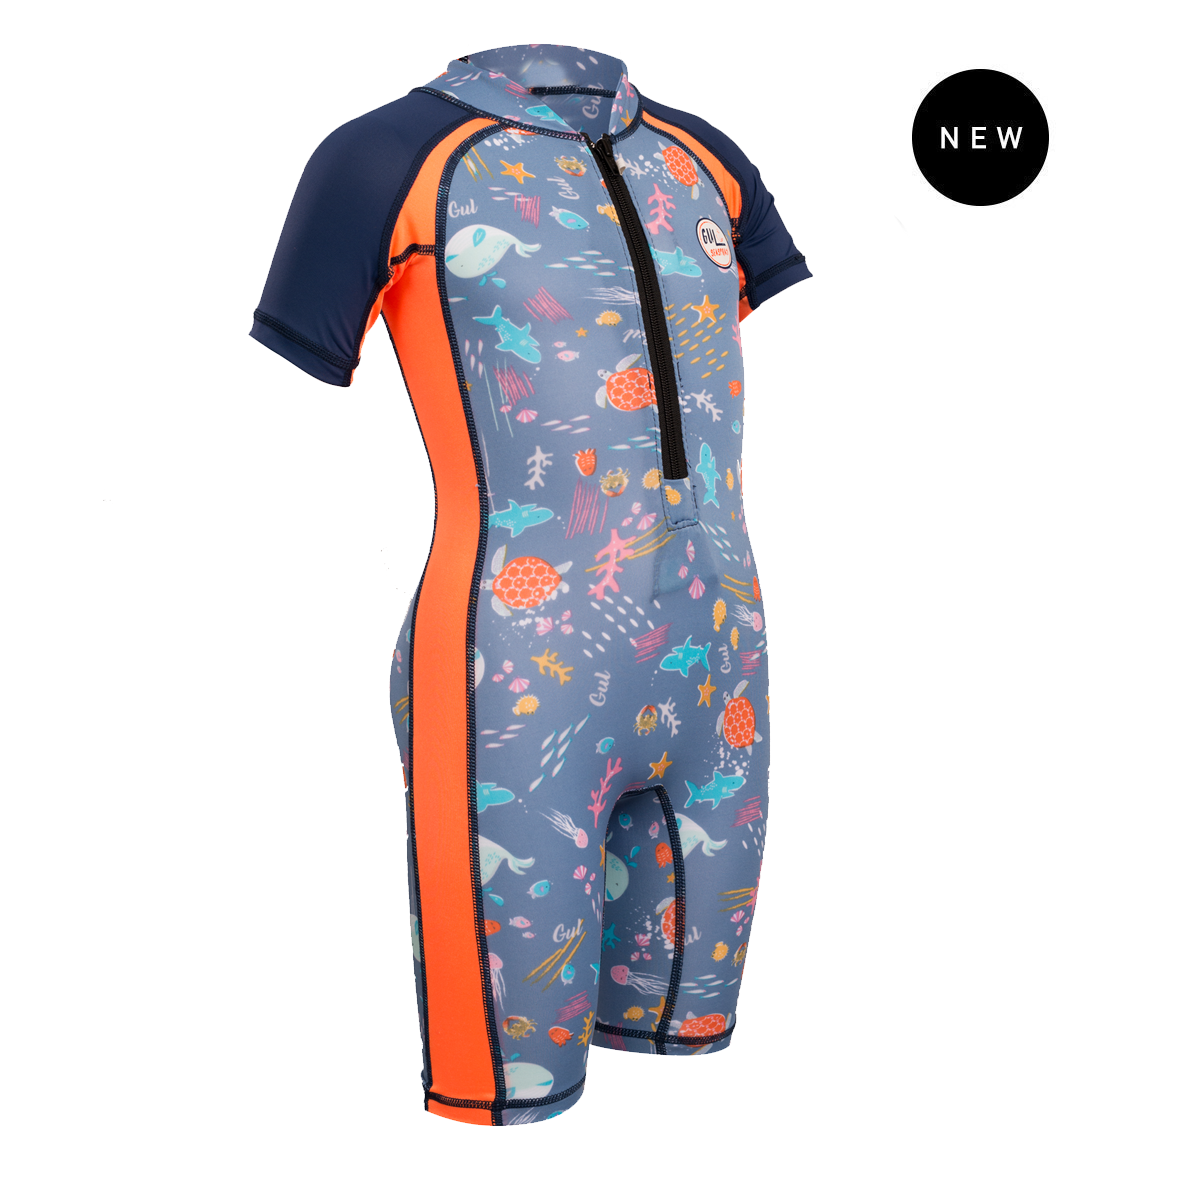 Gul Junior Uv Protection Sunsuit    Rg0349-B4